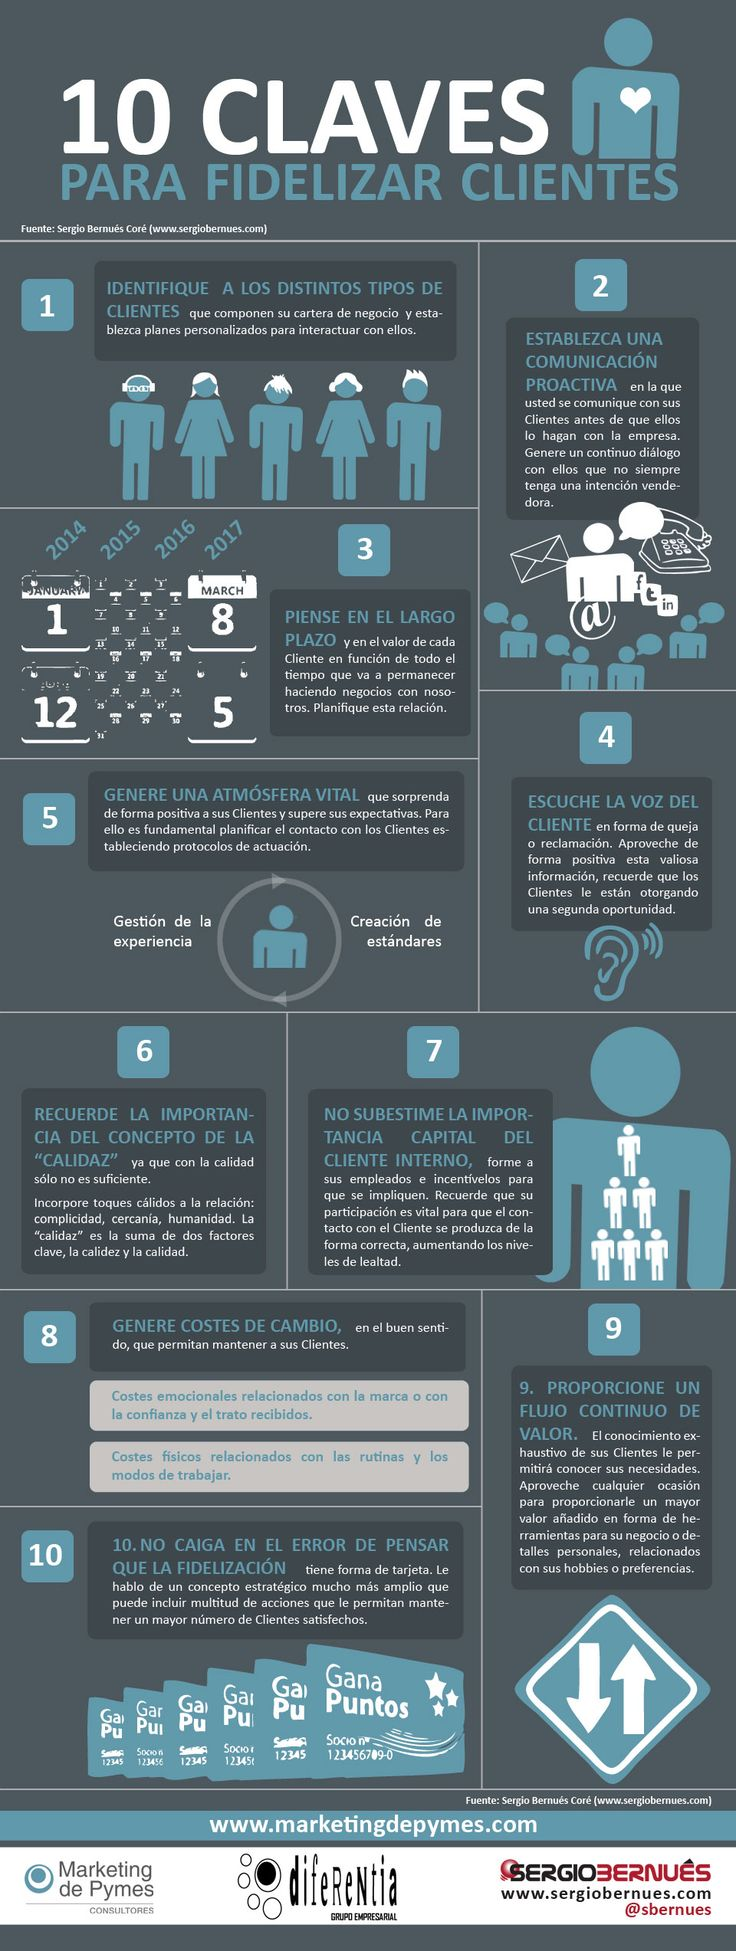 10 claves para fidelizar clientes #infografia #infographic #marketing